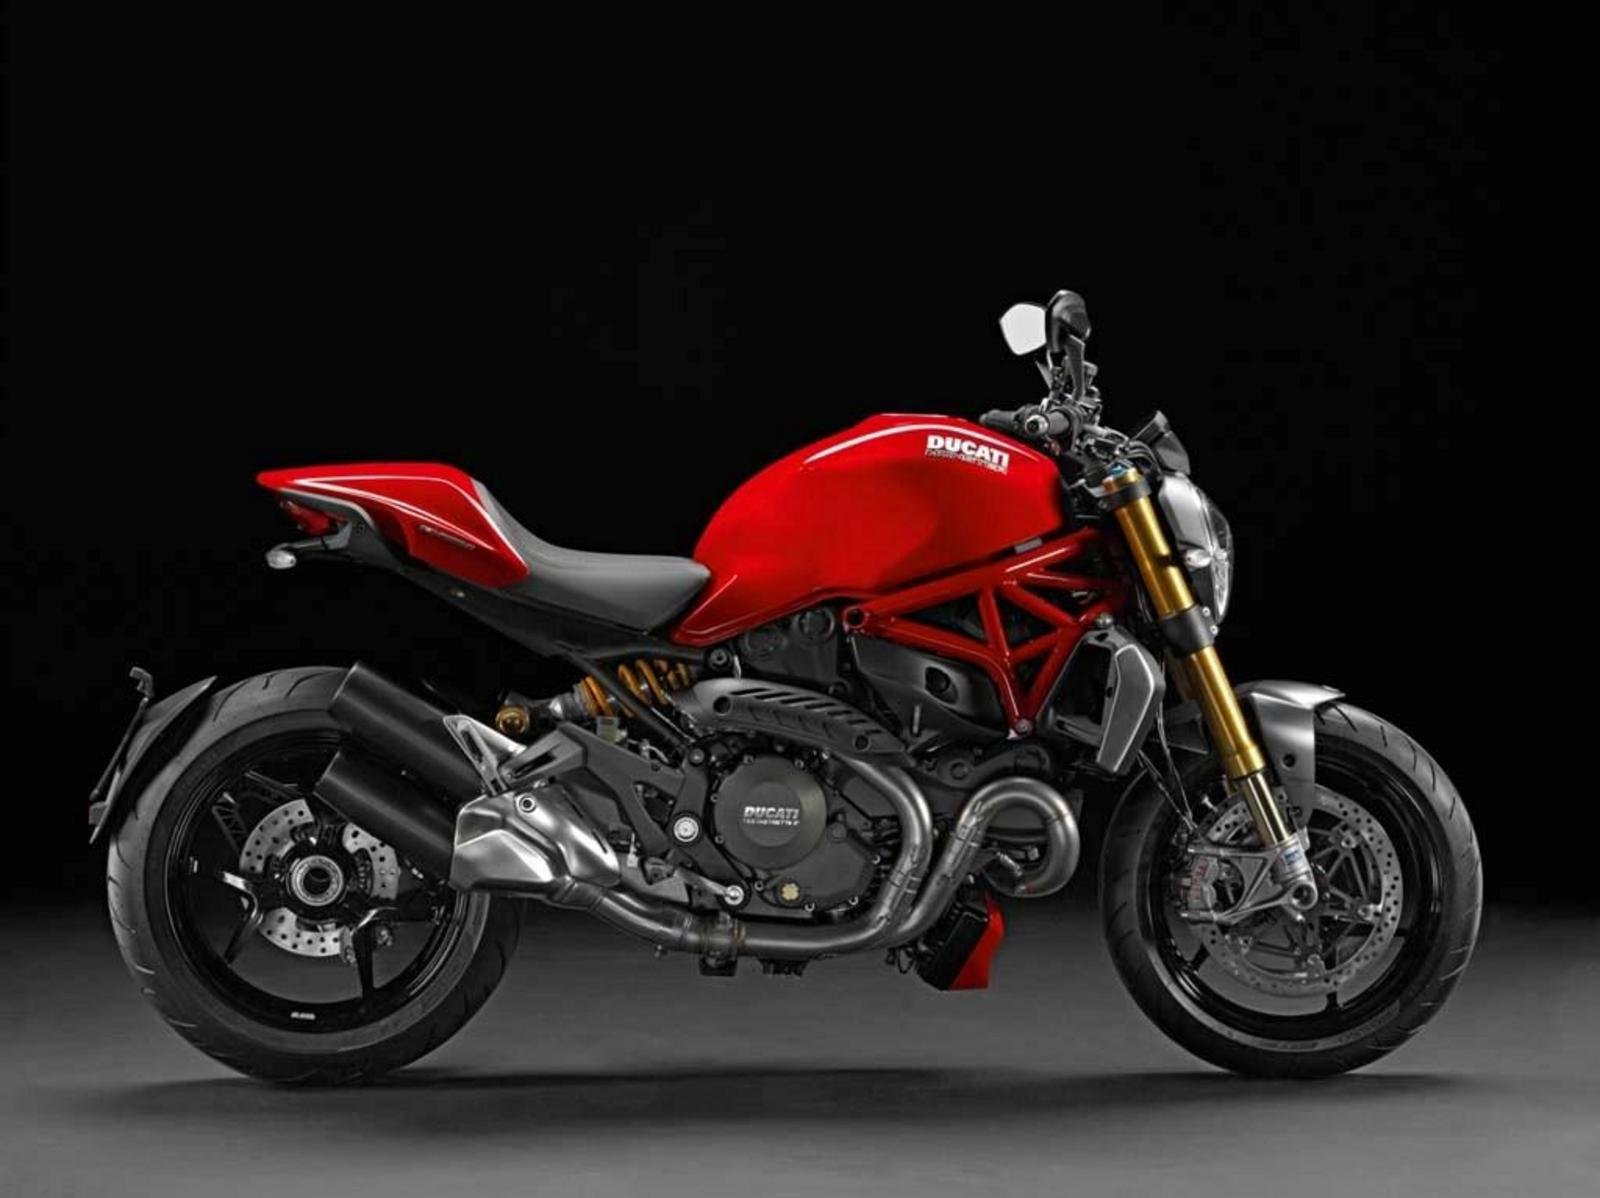 2014 ducati monster 1200 s review top speed. Black Bedroom Furniture Sets. Home Design Ideas